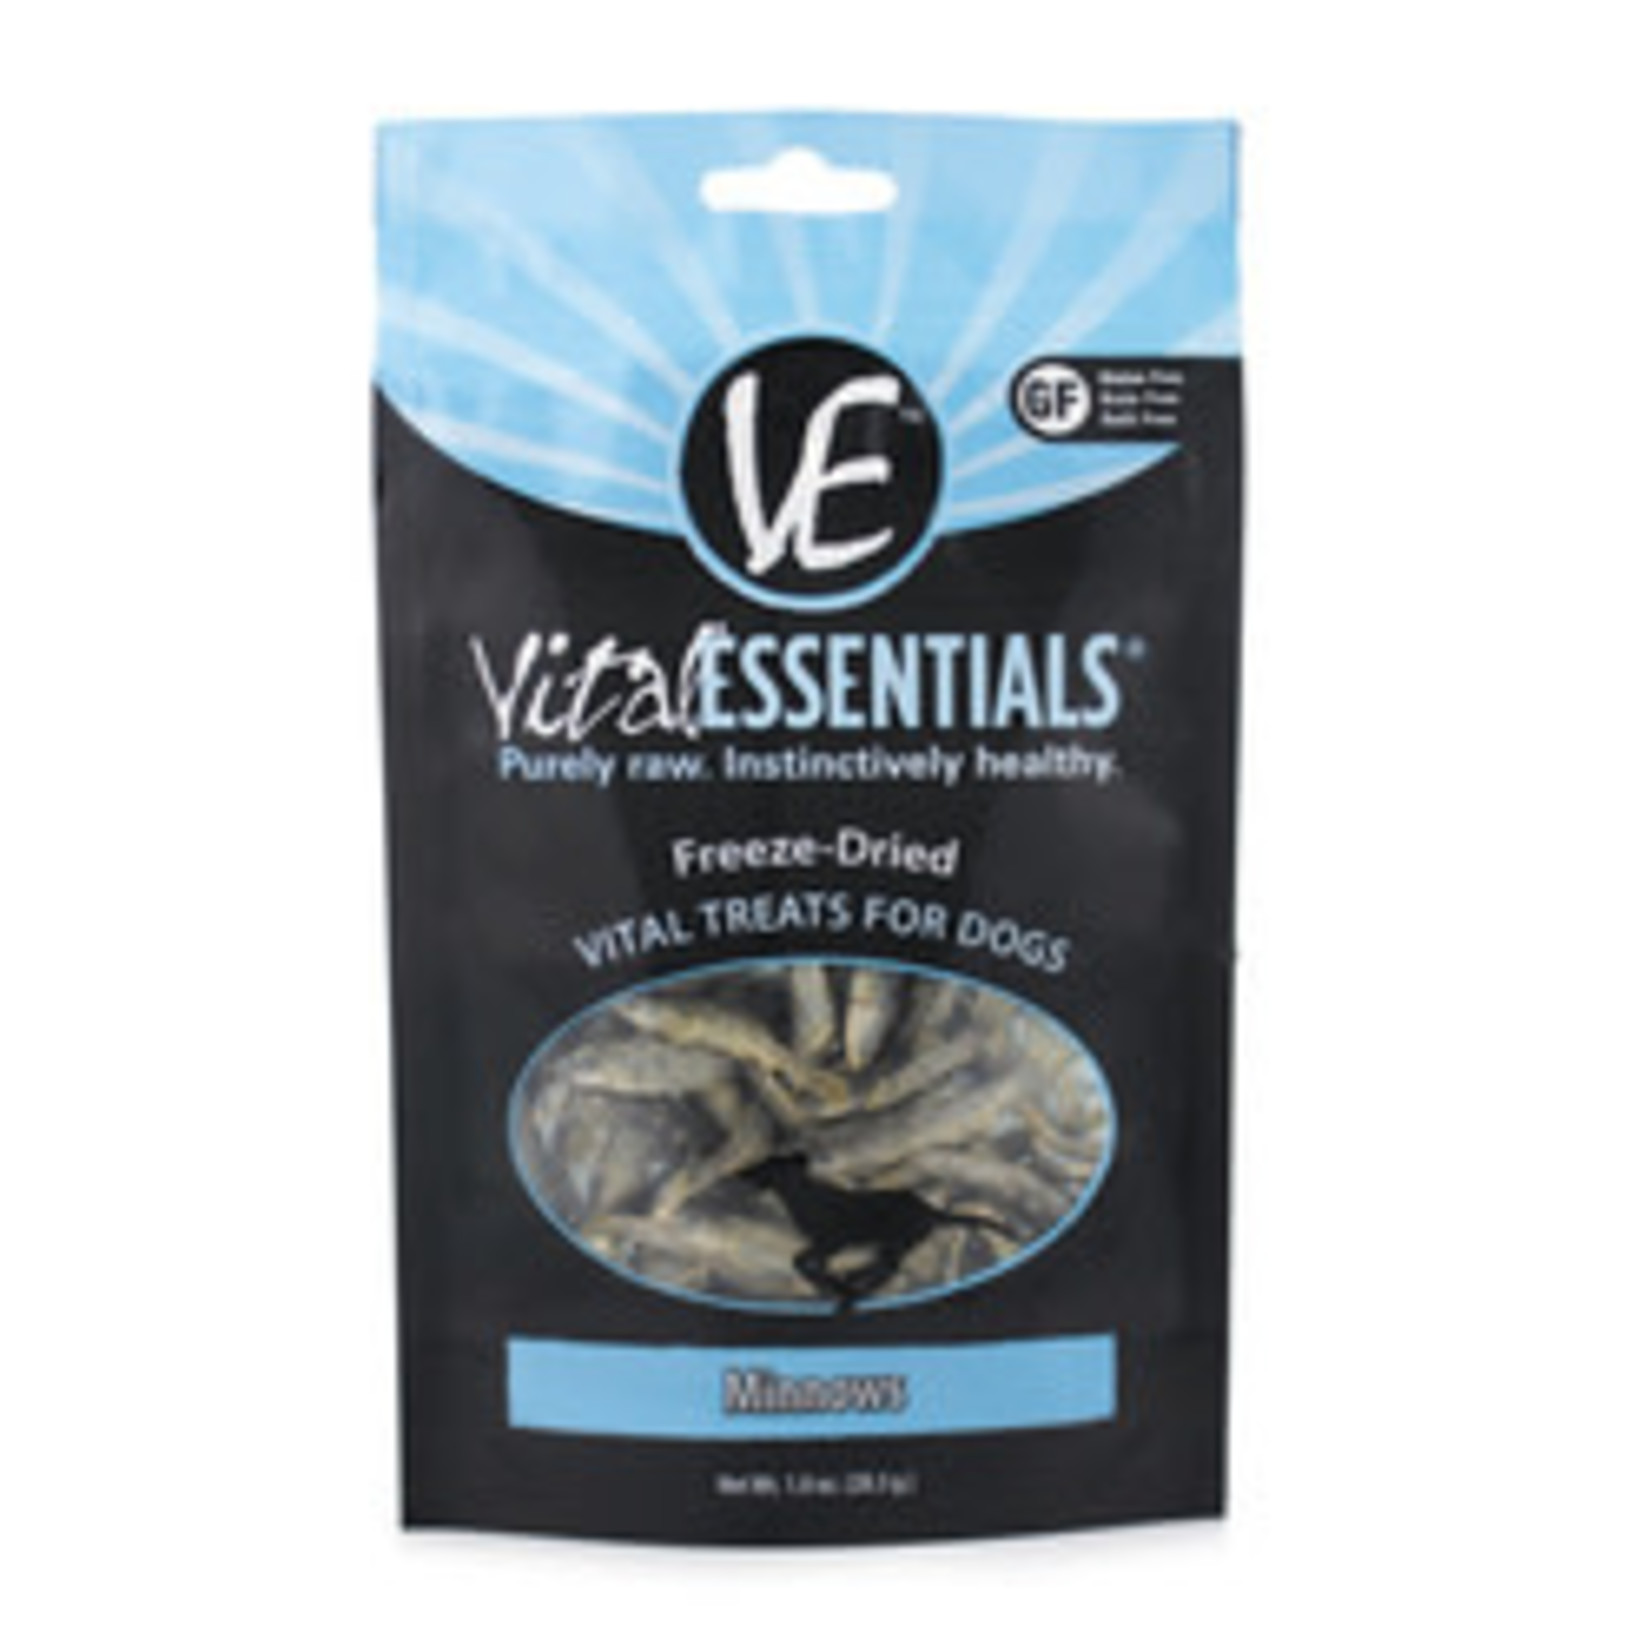 Vital Essentials Vital Essentials Dog Freeze-dried Minnows 1 OZ